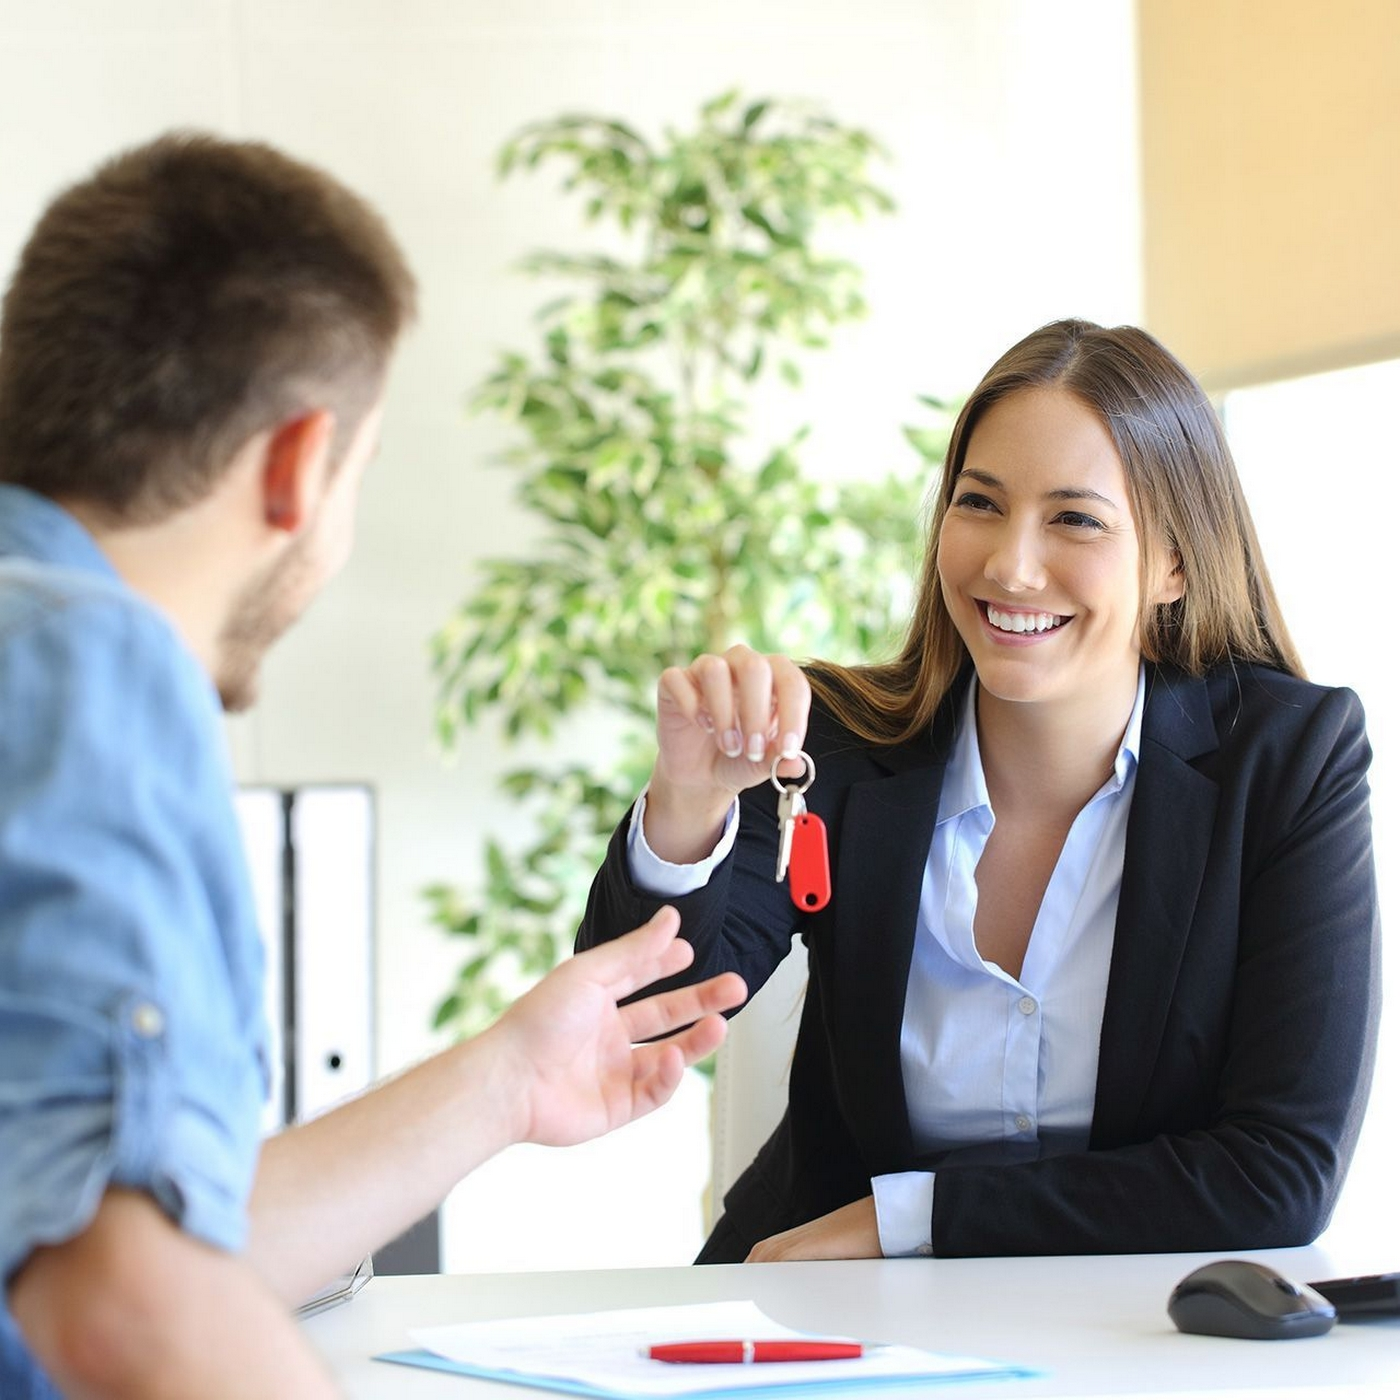 image of leasing agent giving keys to new resident